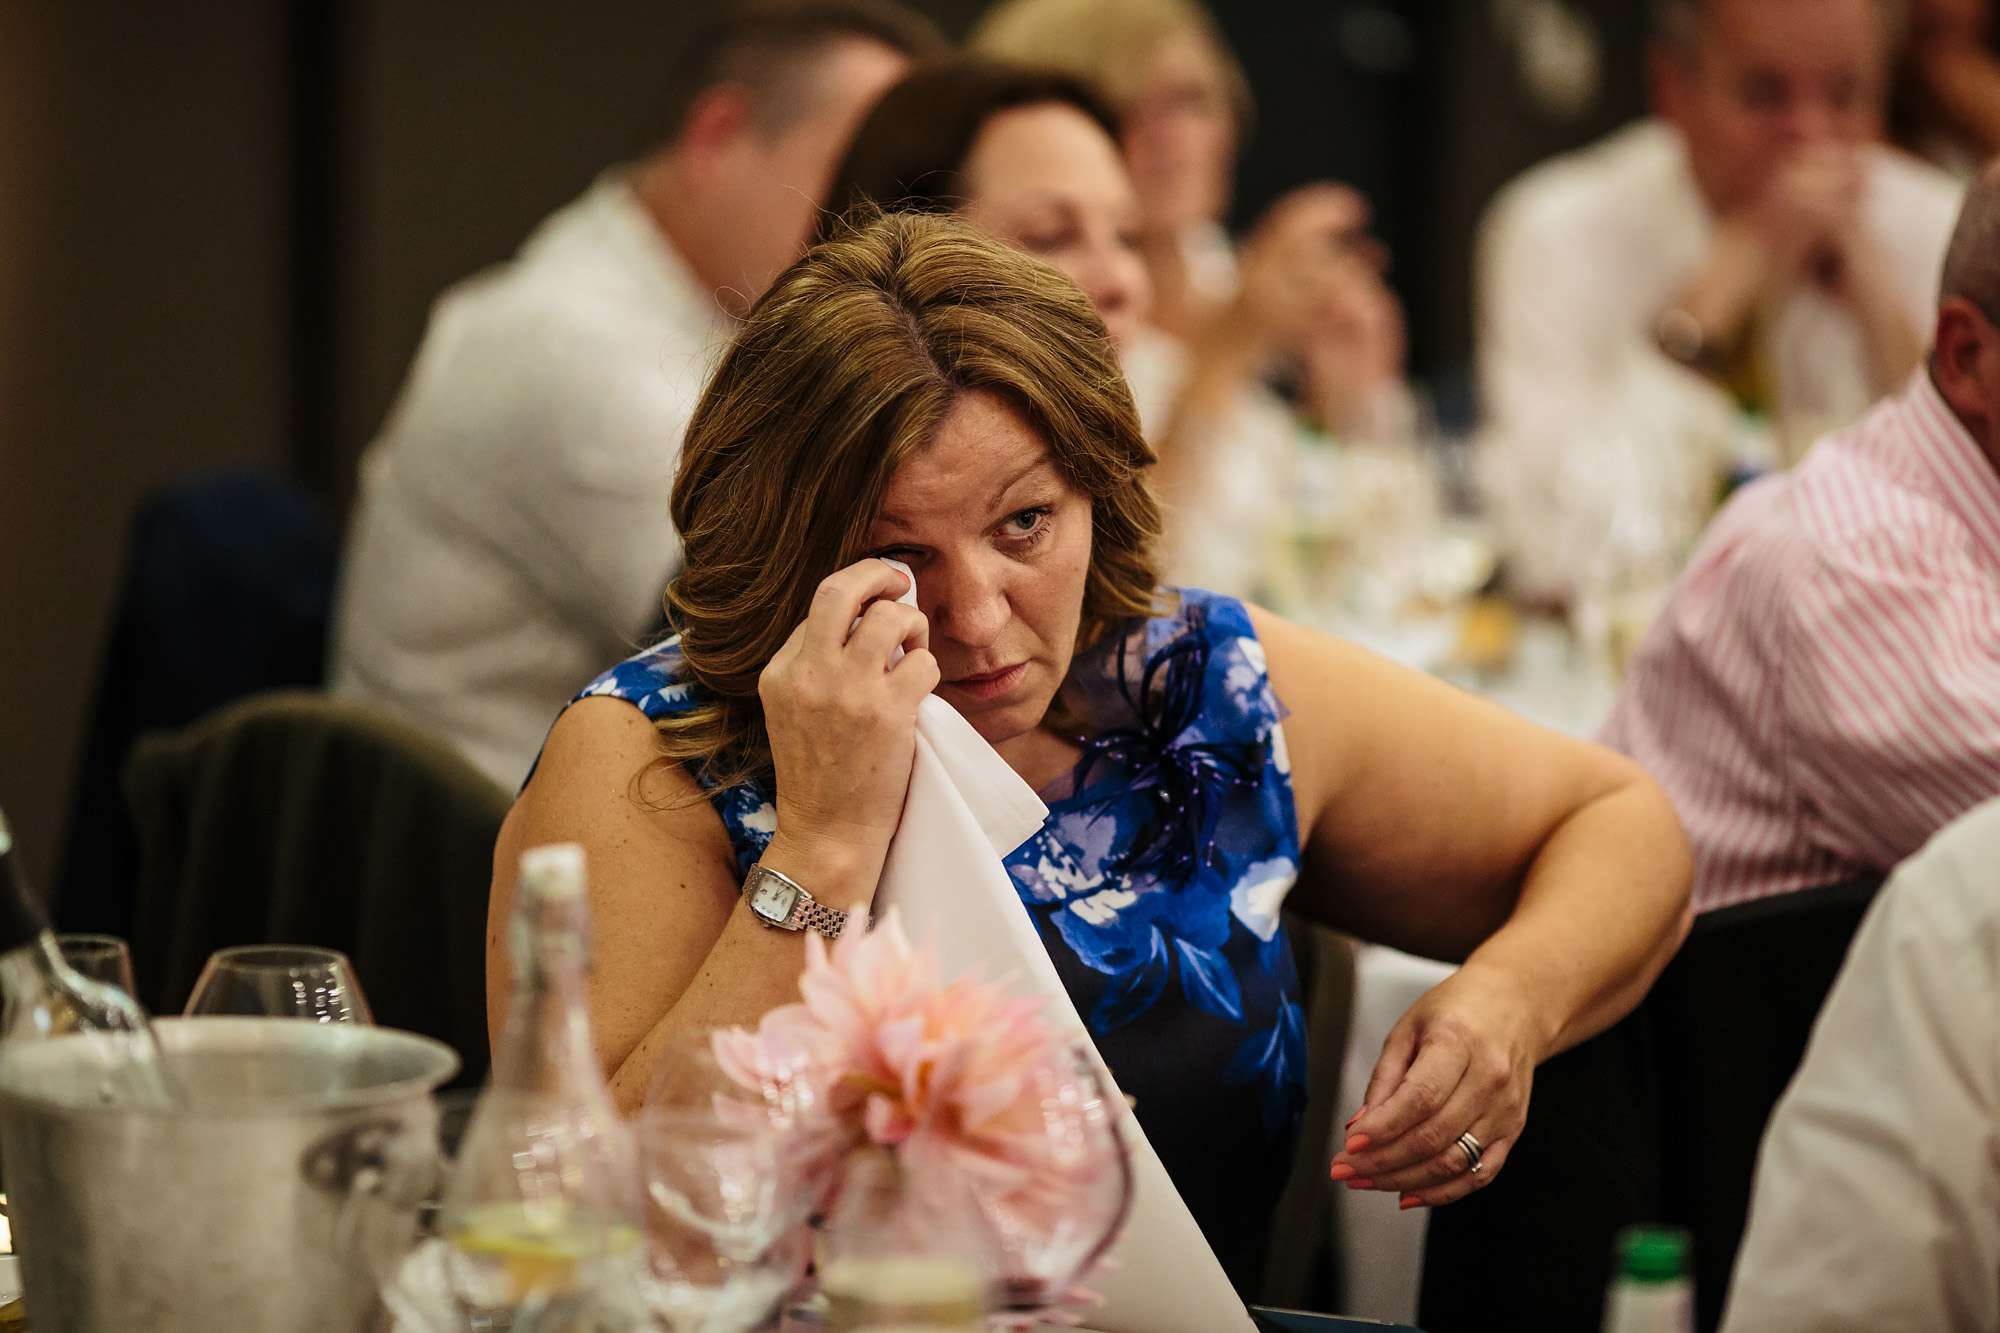 Wedding guest getting emotional during the speeches